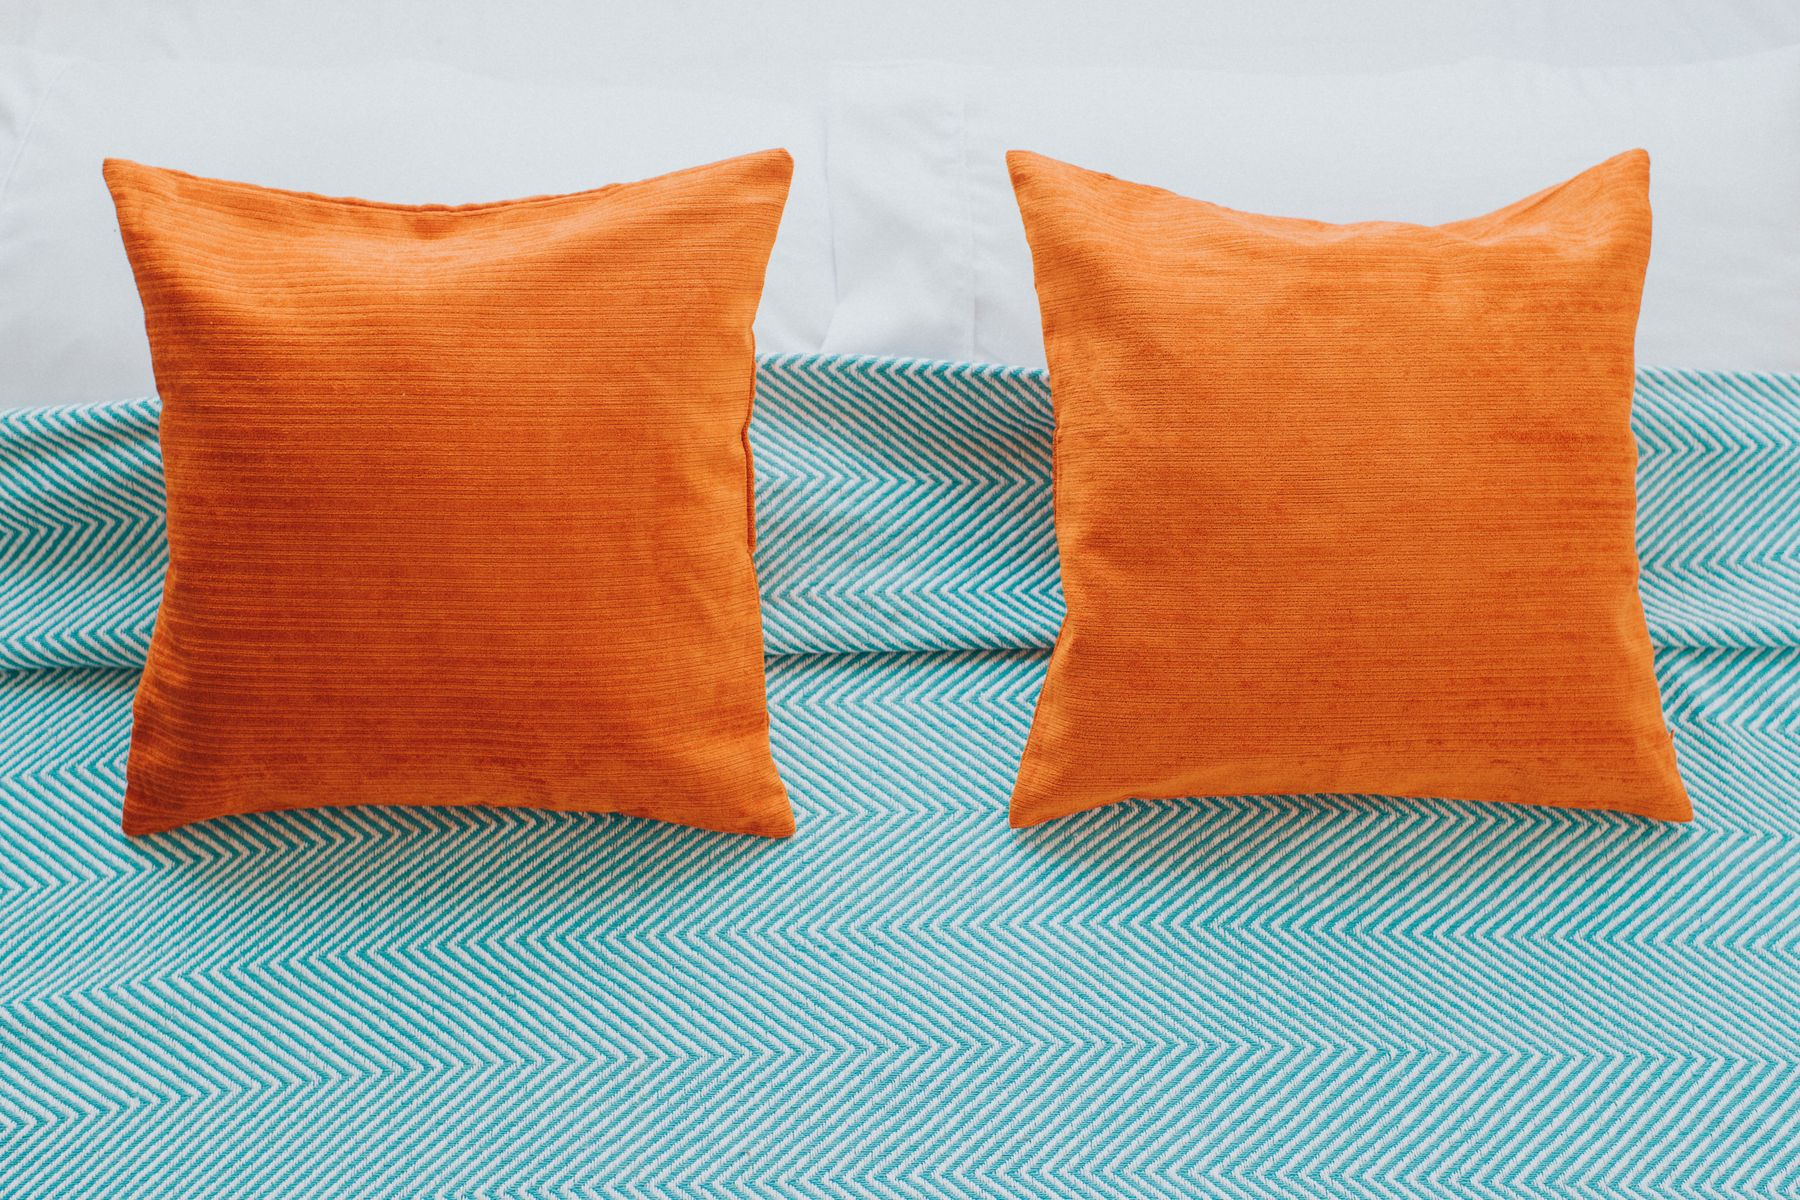 two-square-orange-cushions-on-a-bed